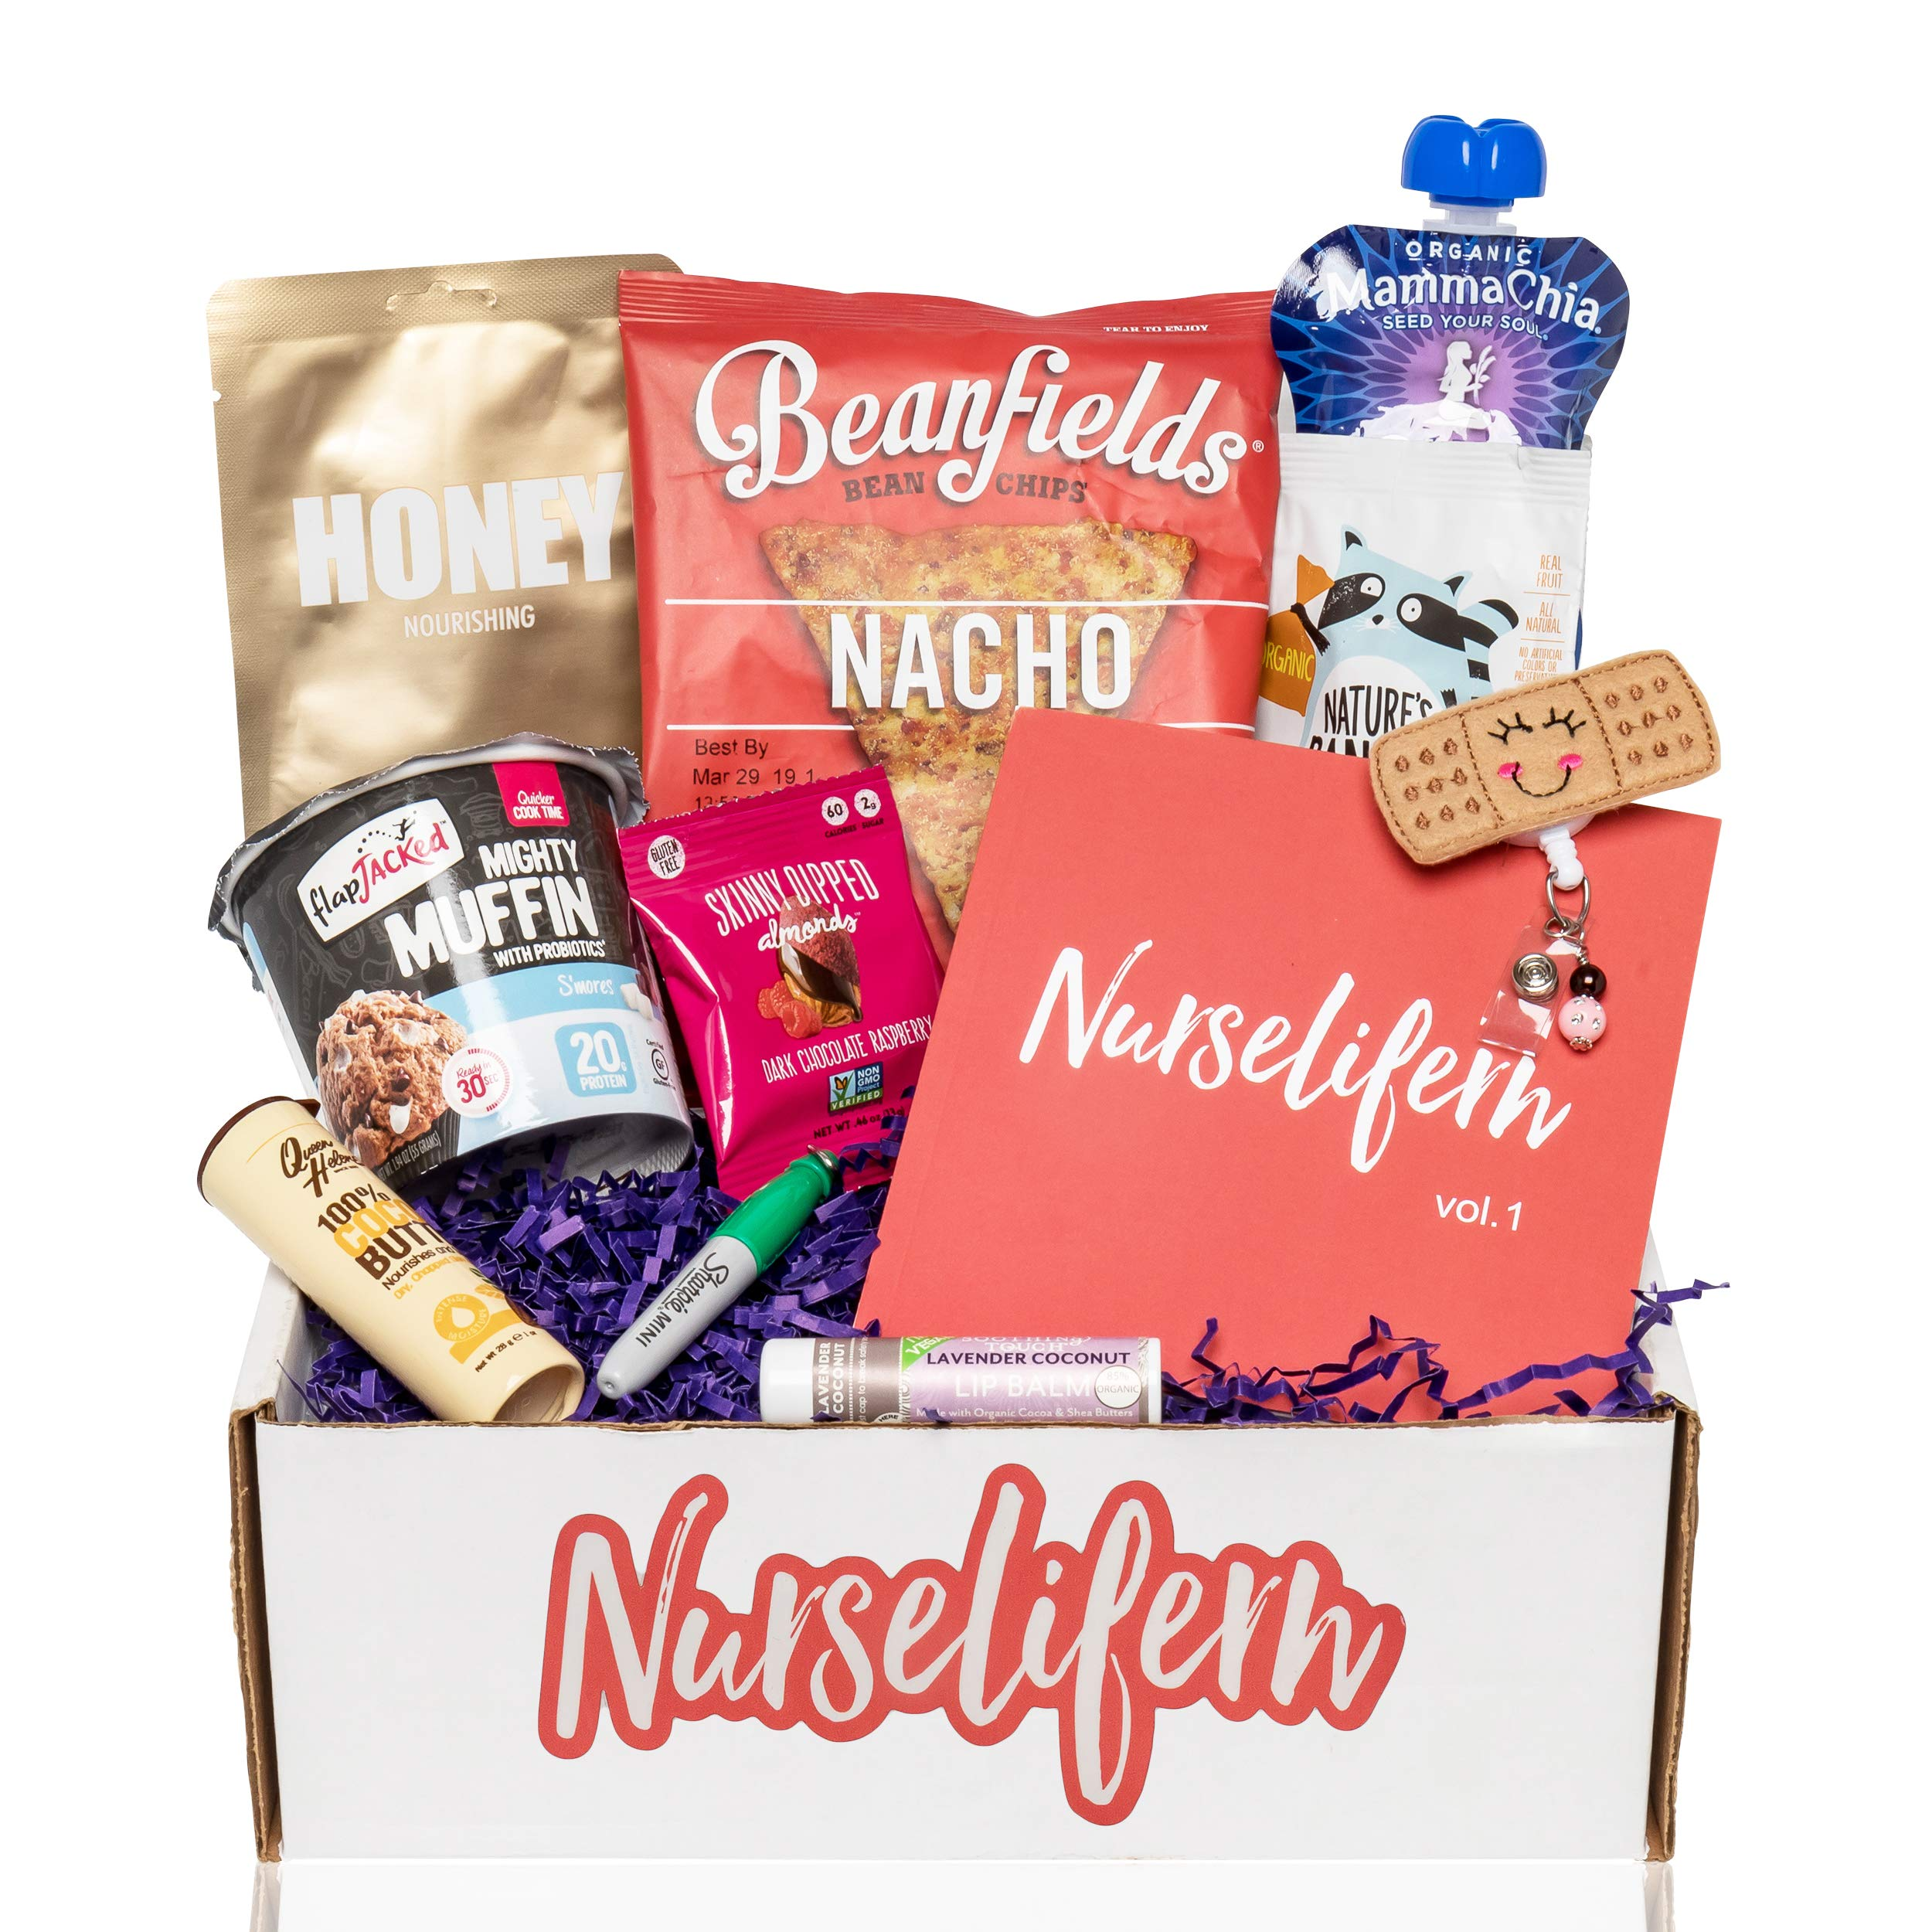 Nurse Essentials Gift Box: Nurse Badge Healthy Snacks Self Care Nurse Gift Must Haves All In One By Nurselifern by BUNNY · JAMES · (Image #1)